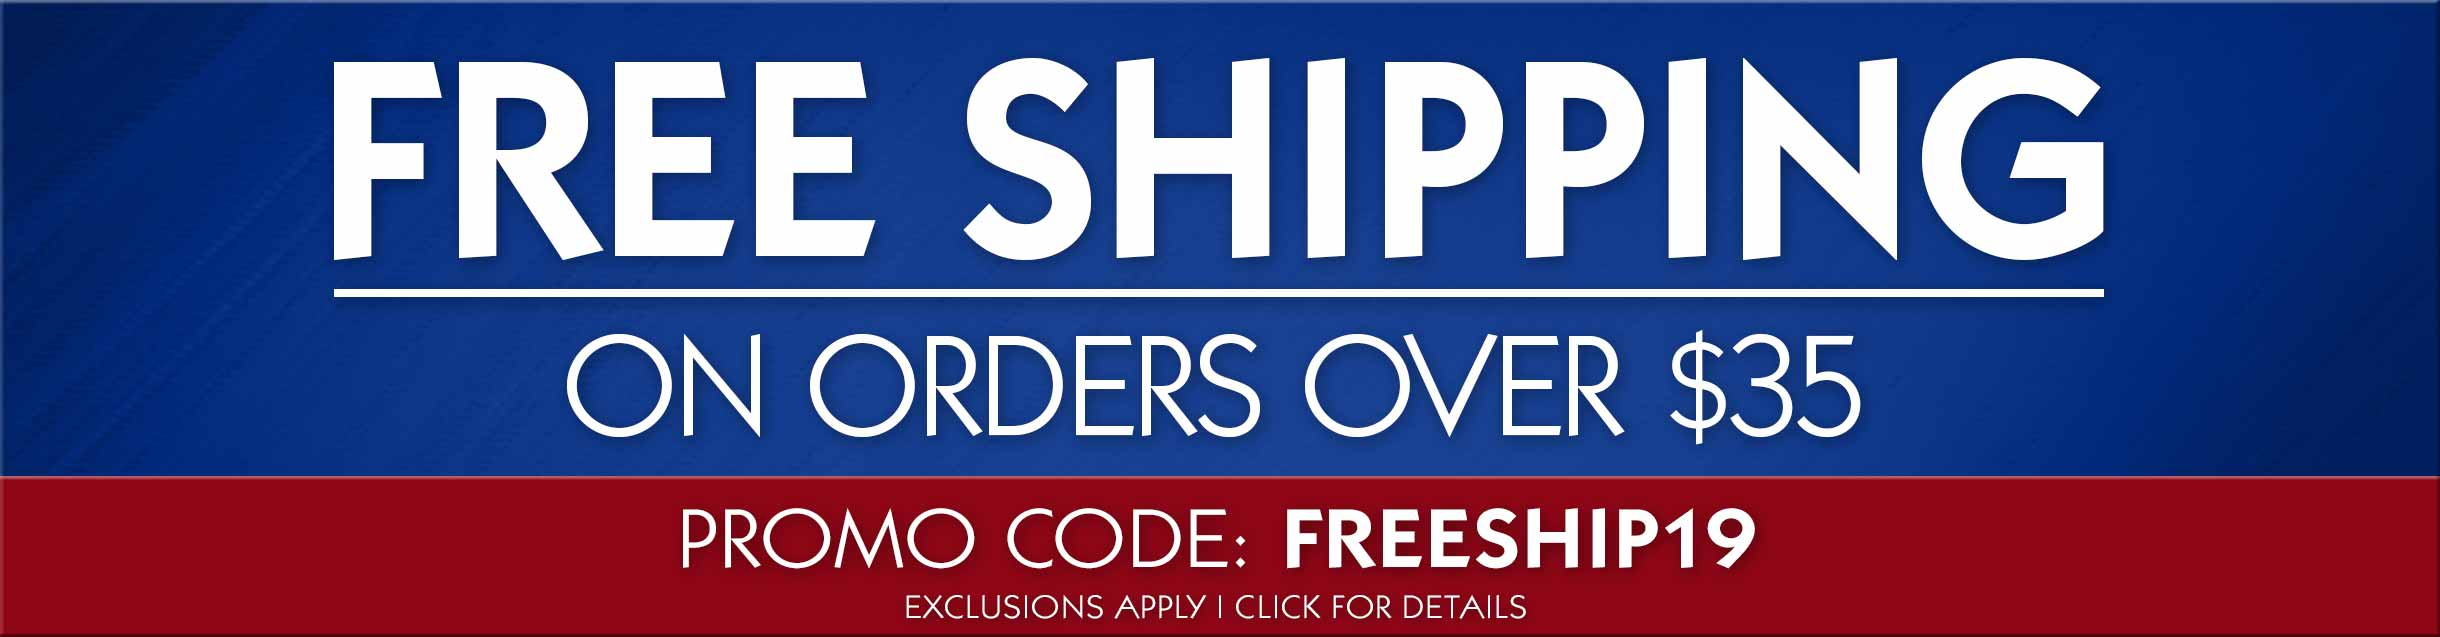 Free 2016 World Series Stocking and Free Shipping, with your $25 purchase. Exclusions Apply. Promo Code: STOCKING17